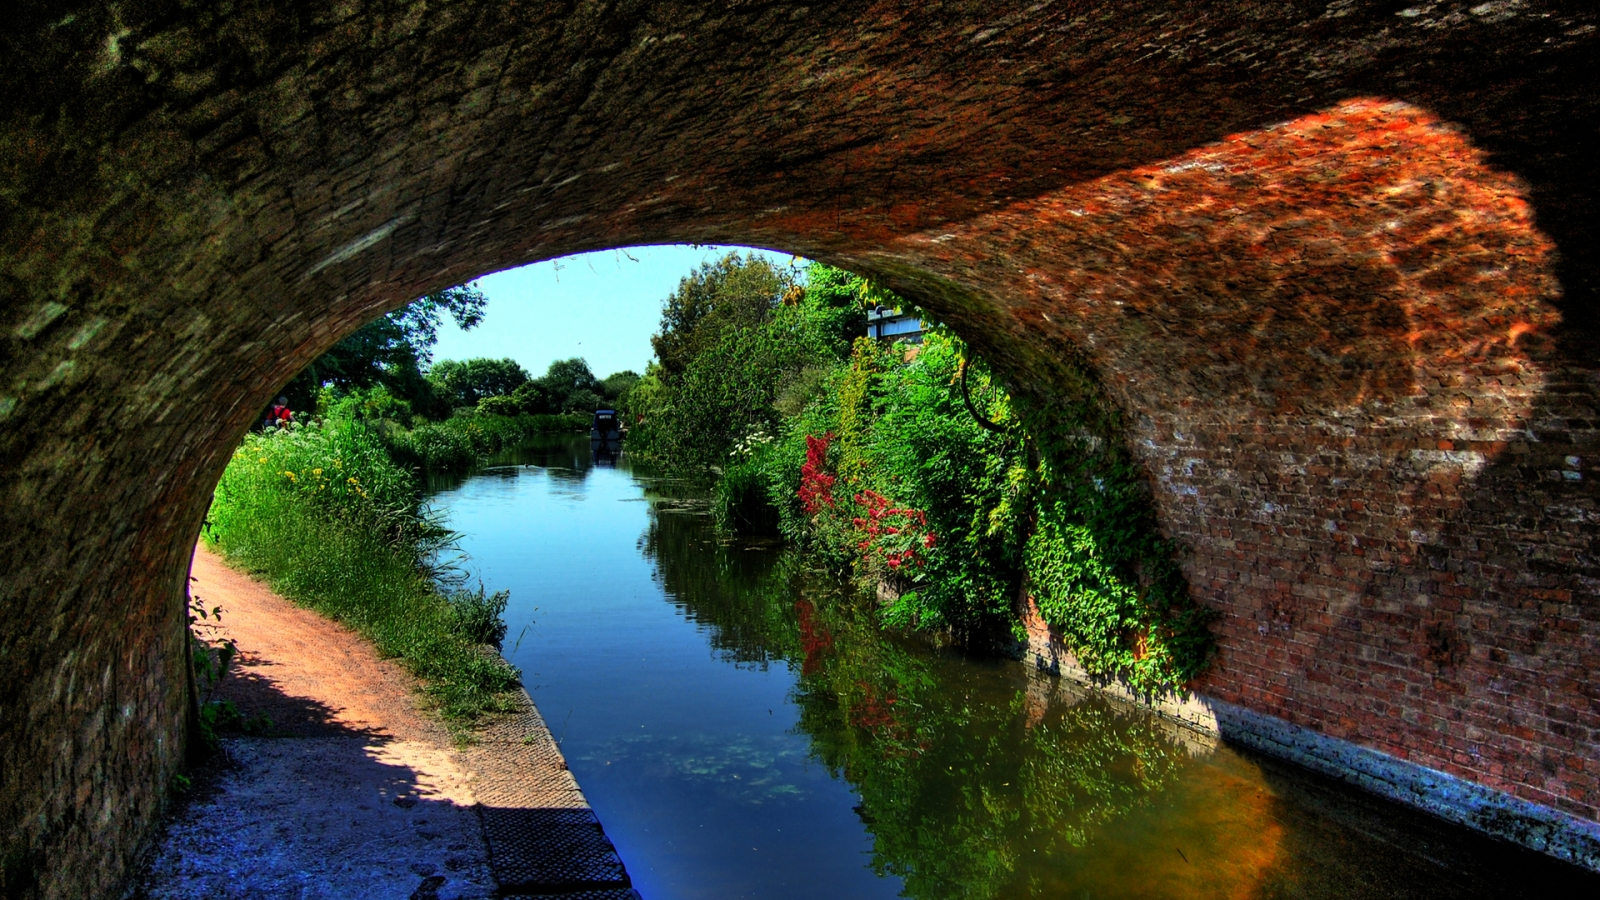 Canal Under An Arched Bridge for 1600 x 900 HDTV resolution